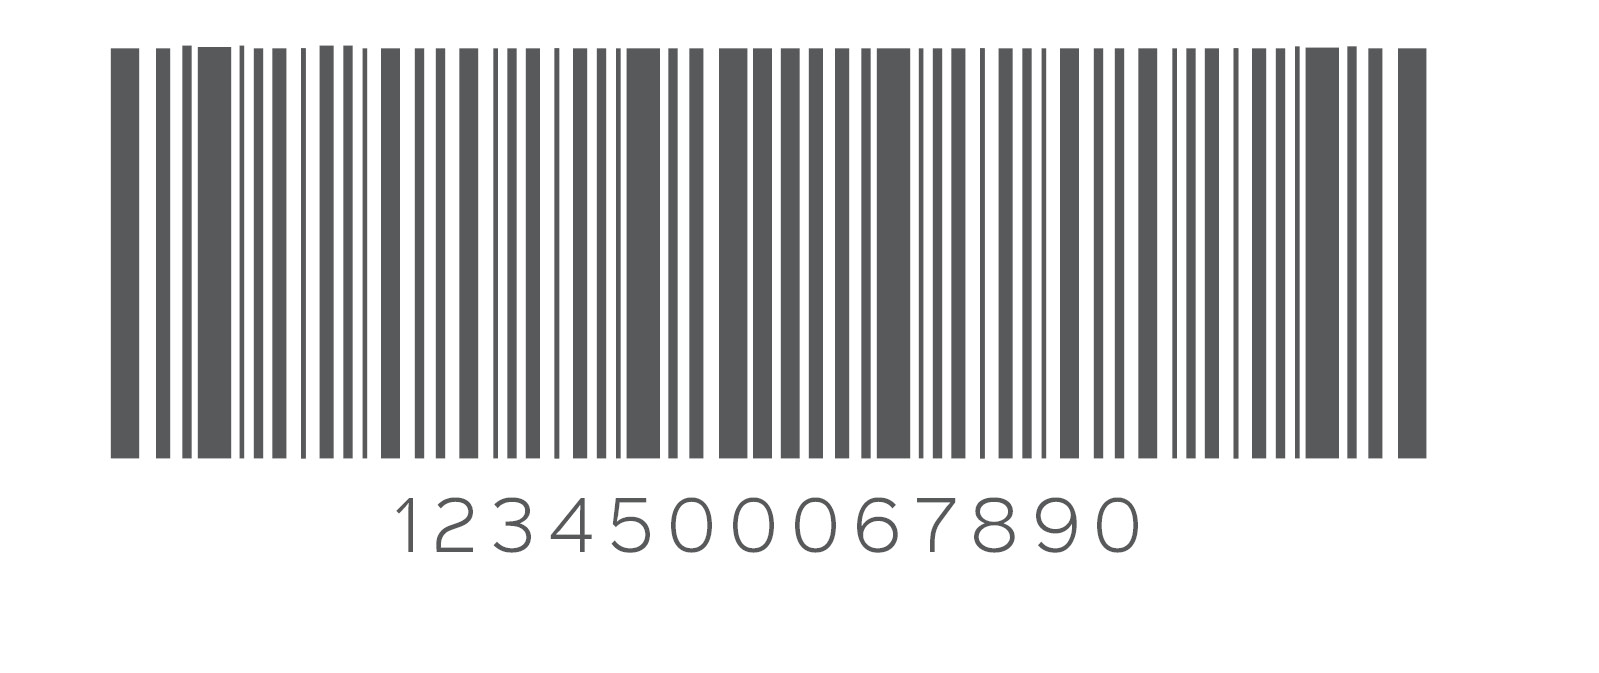 Creating A Barcode Generator In App Inventor 2 Open Source For You Circuit Board Labels Barcoding Blog Advertisement